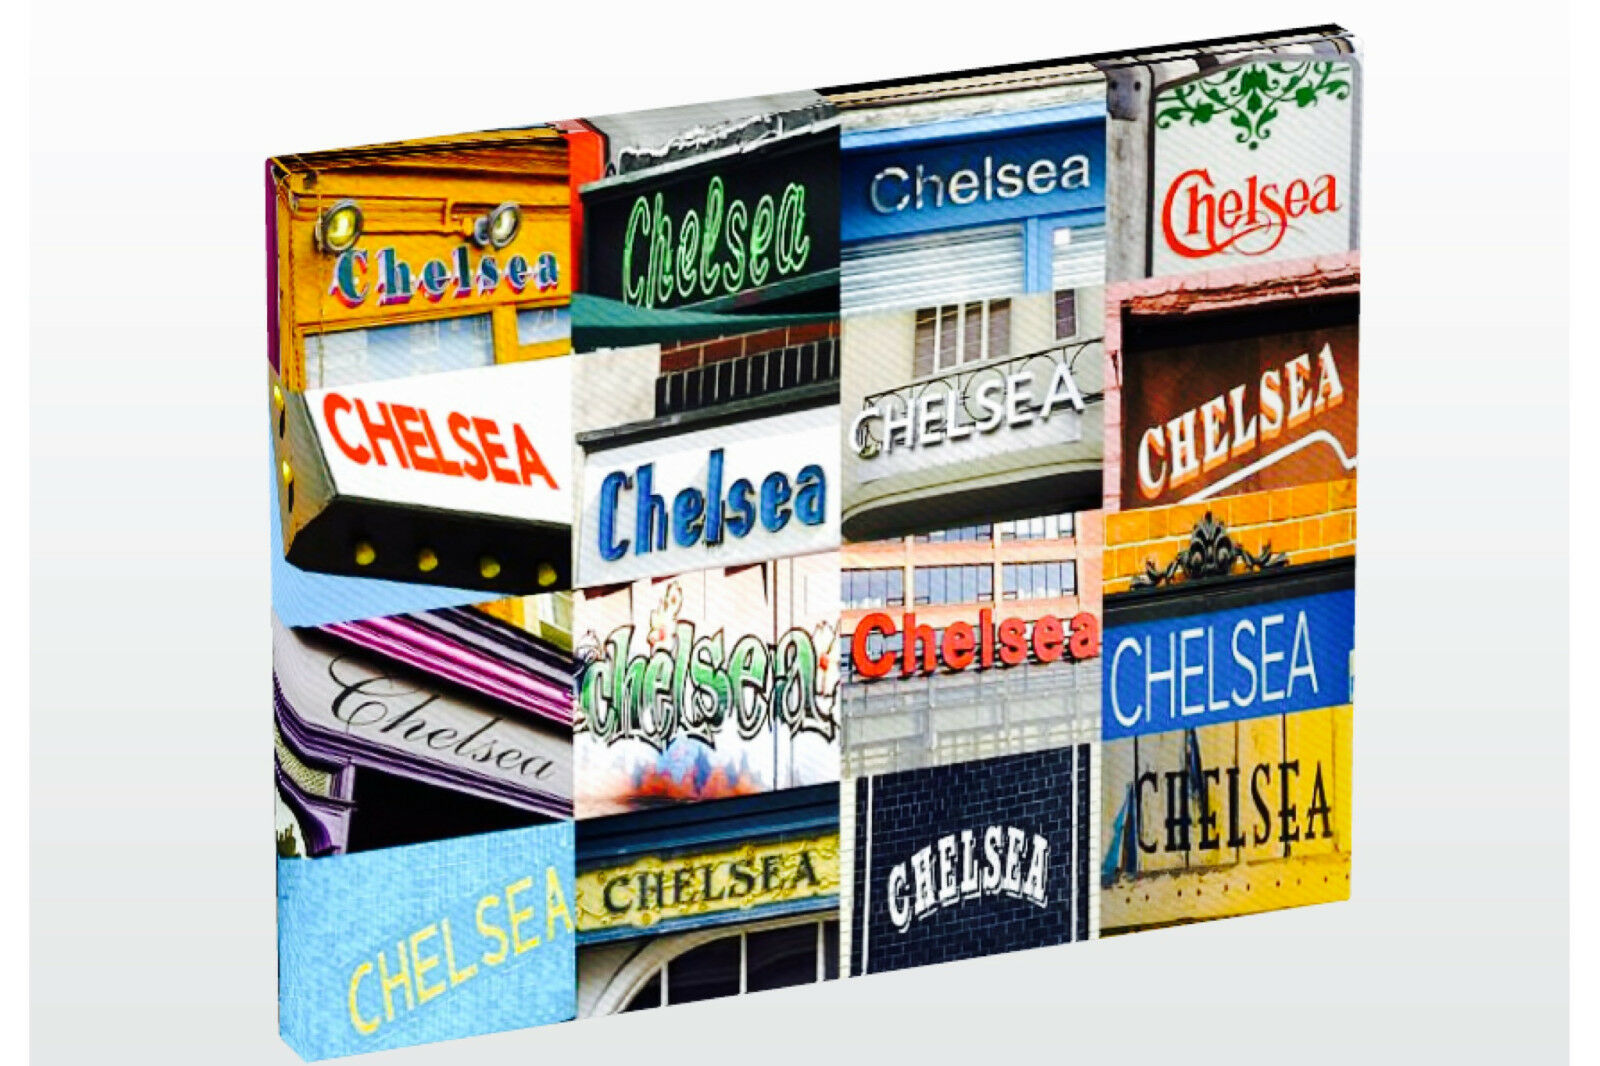 Personalized Photo Canvas featuring CHELSEA in photos of signs